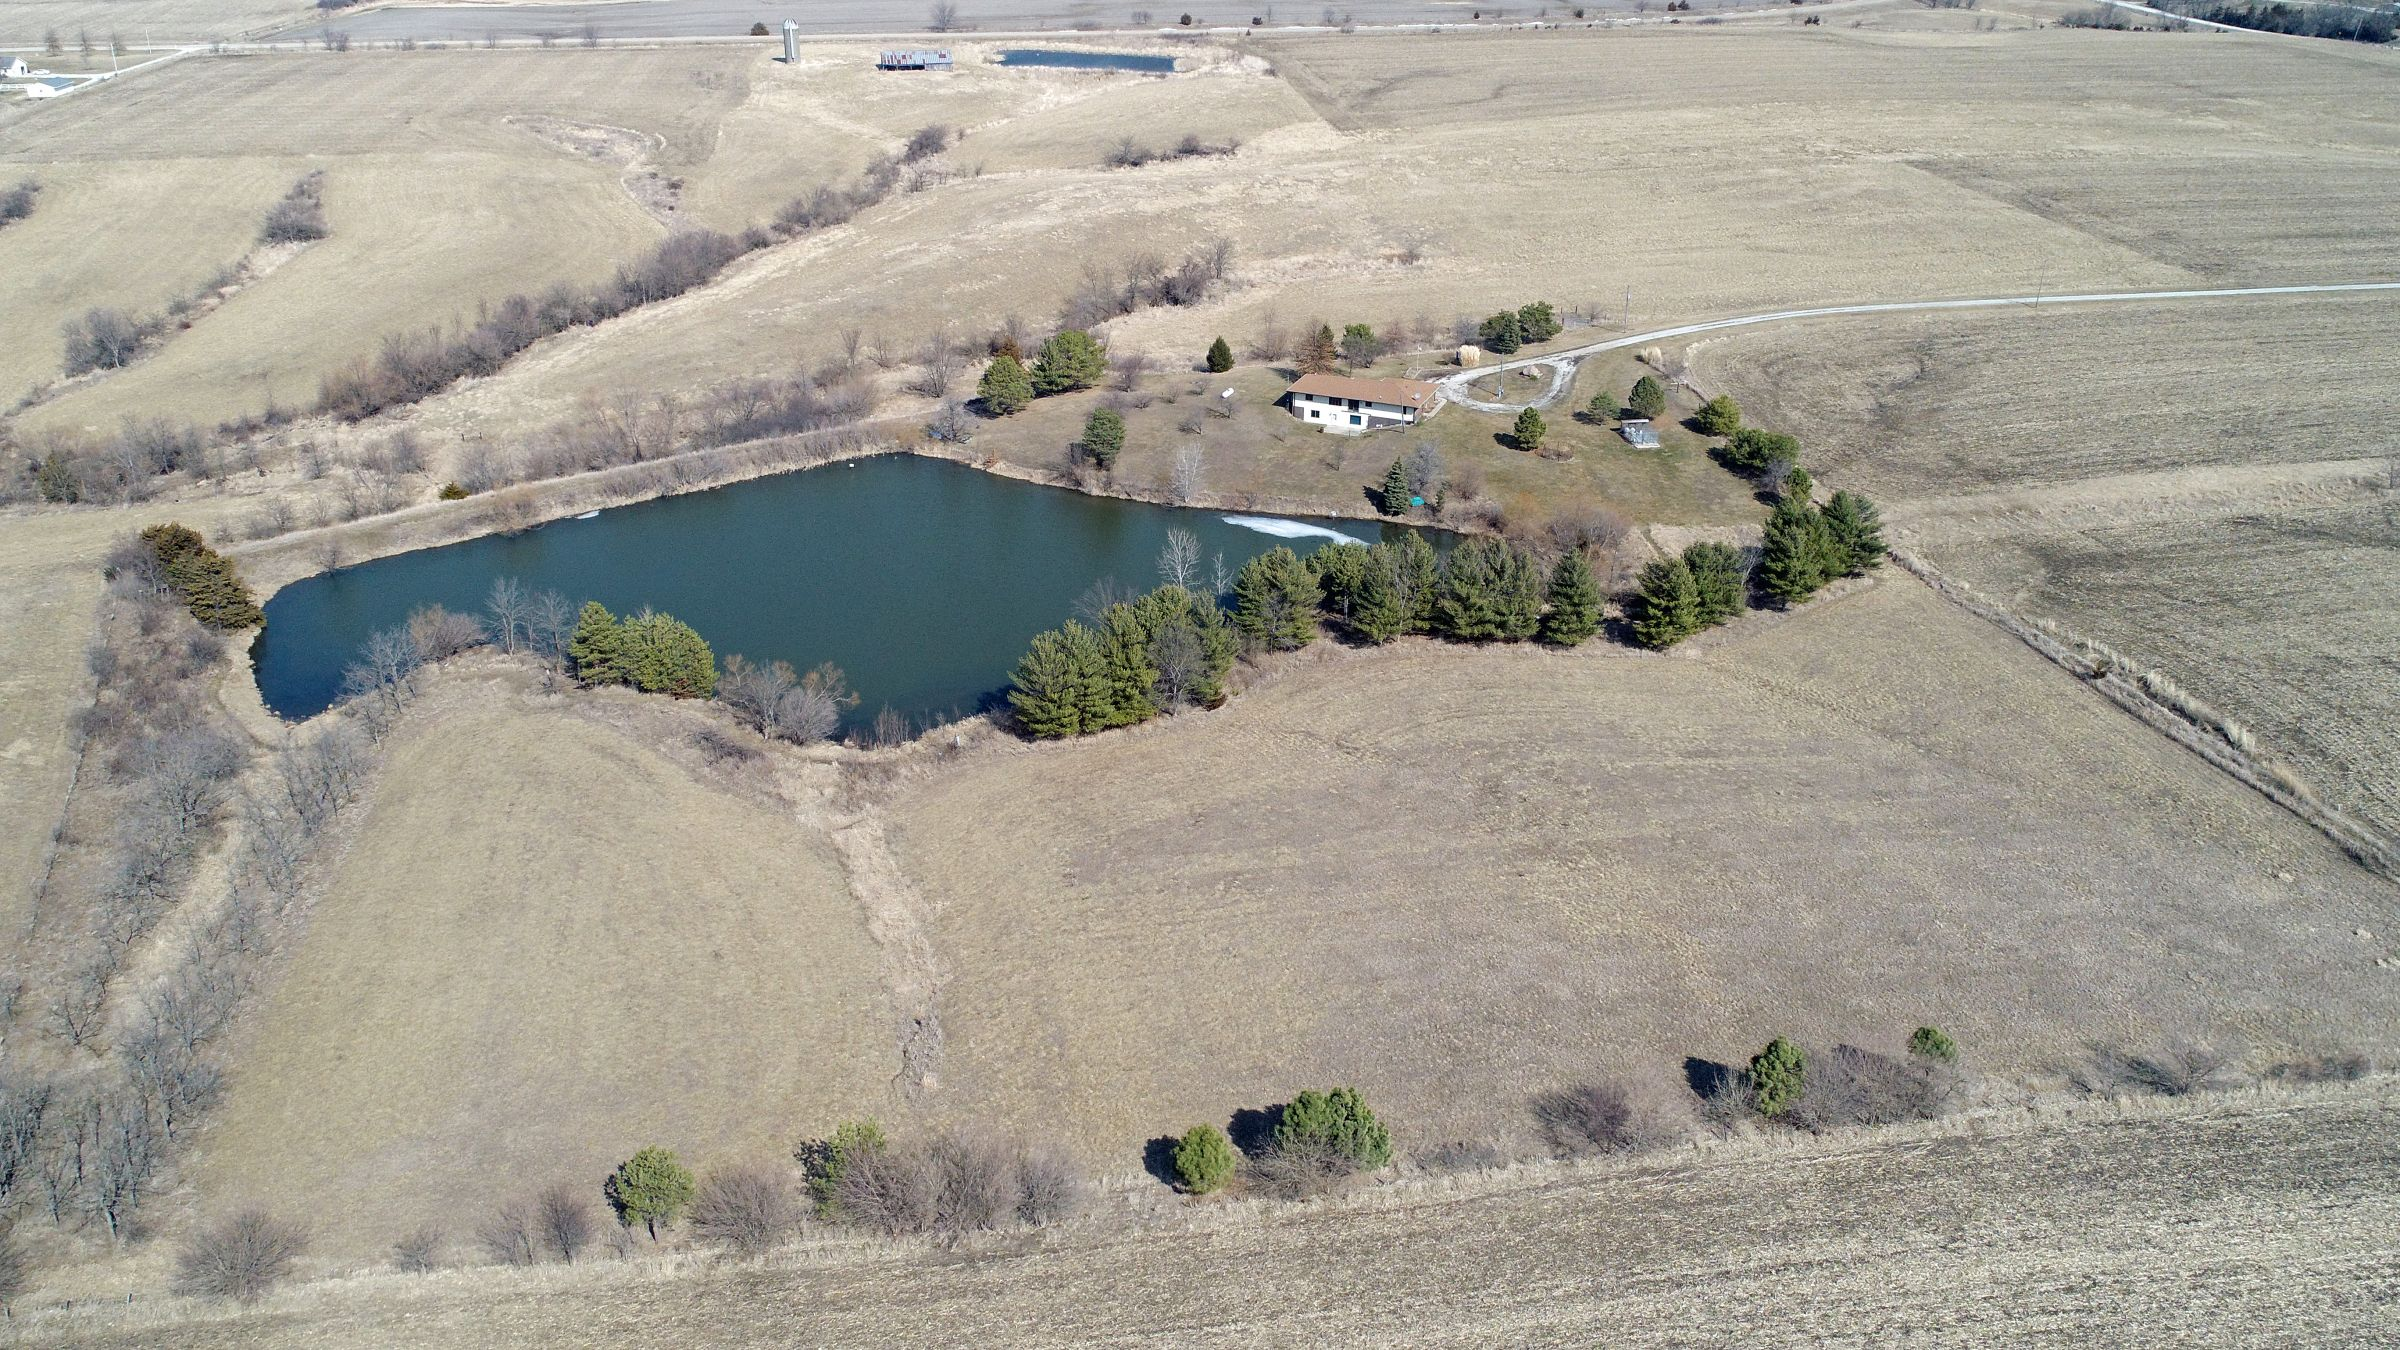 residential-land-lucas-county-iowa-25-acres-listing-number-15402-1-2021-03-10-024913.JPG